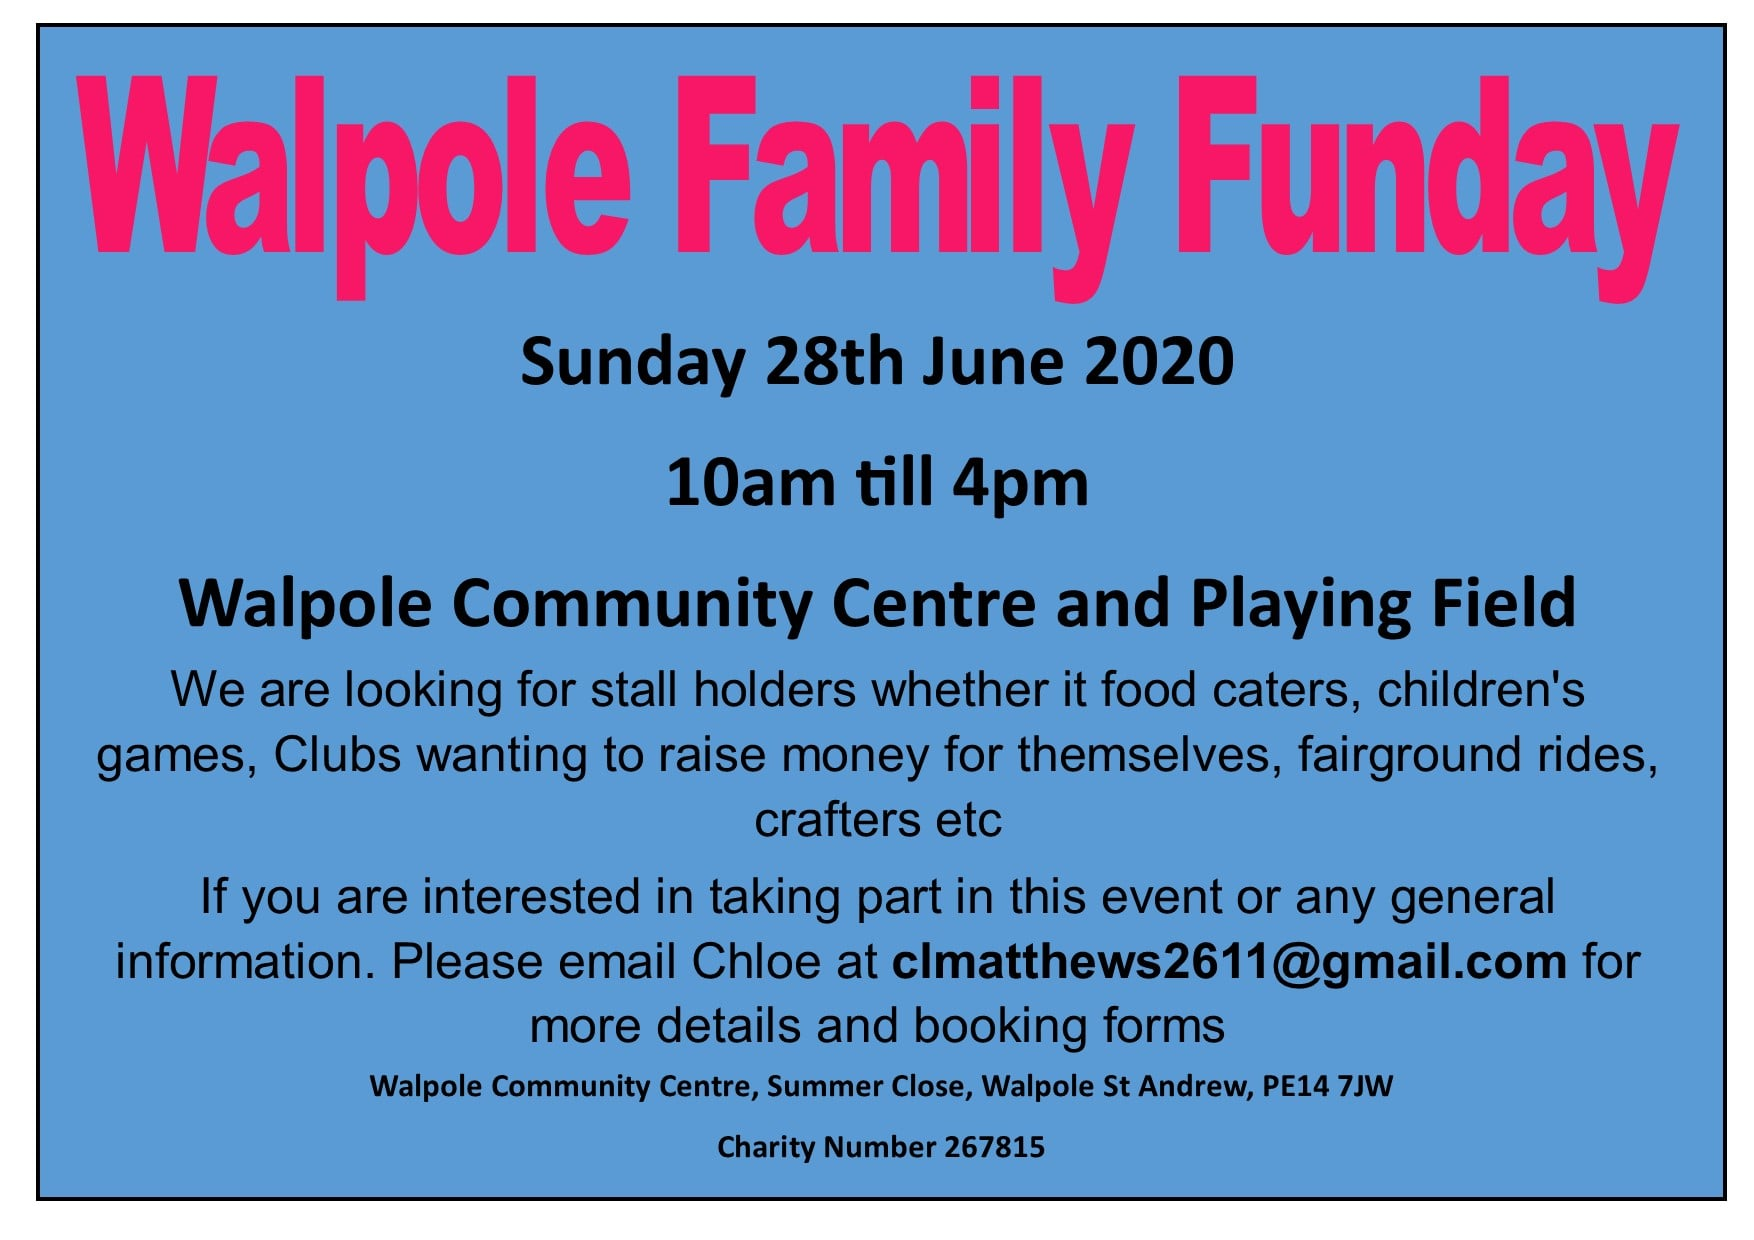 Walpole Family Funday Poster 28th June 2020